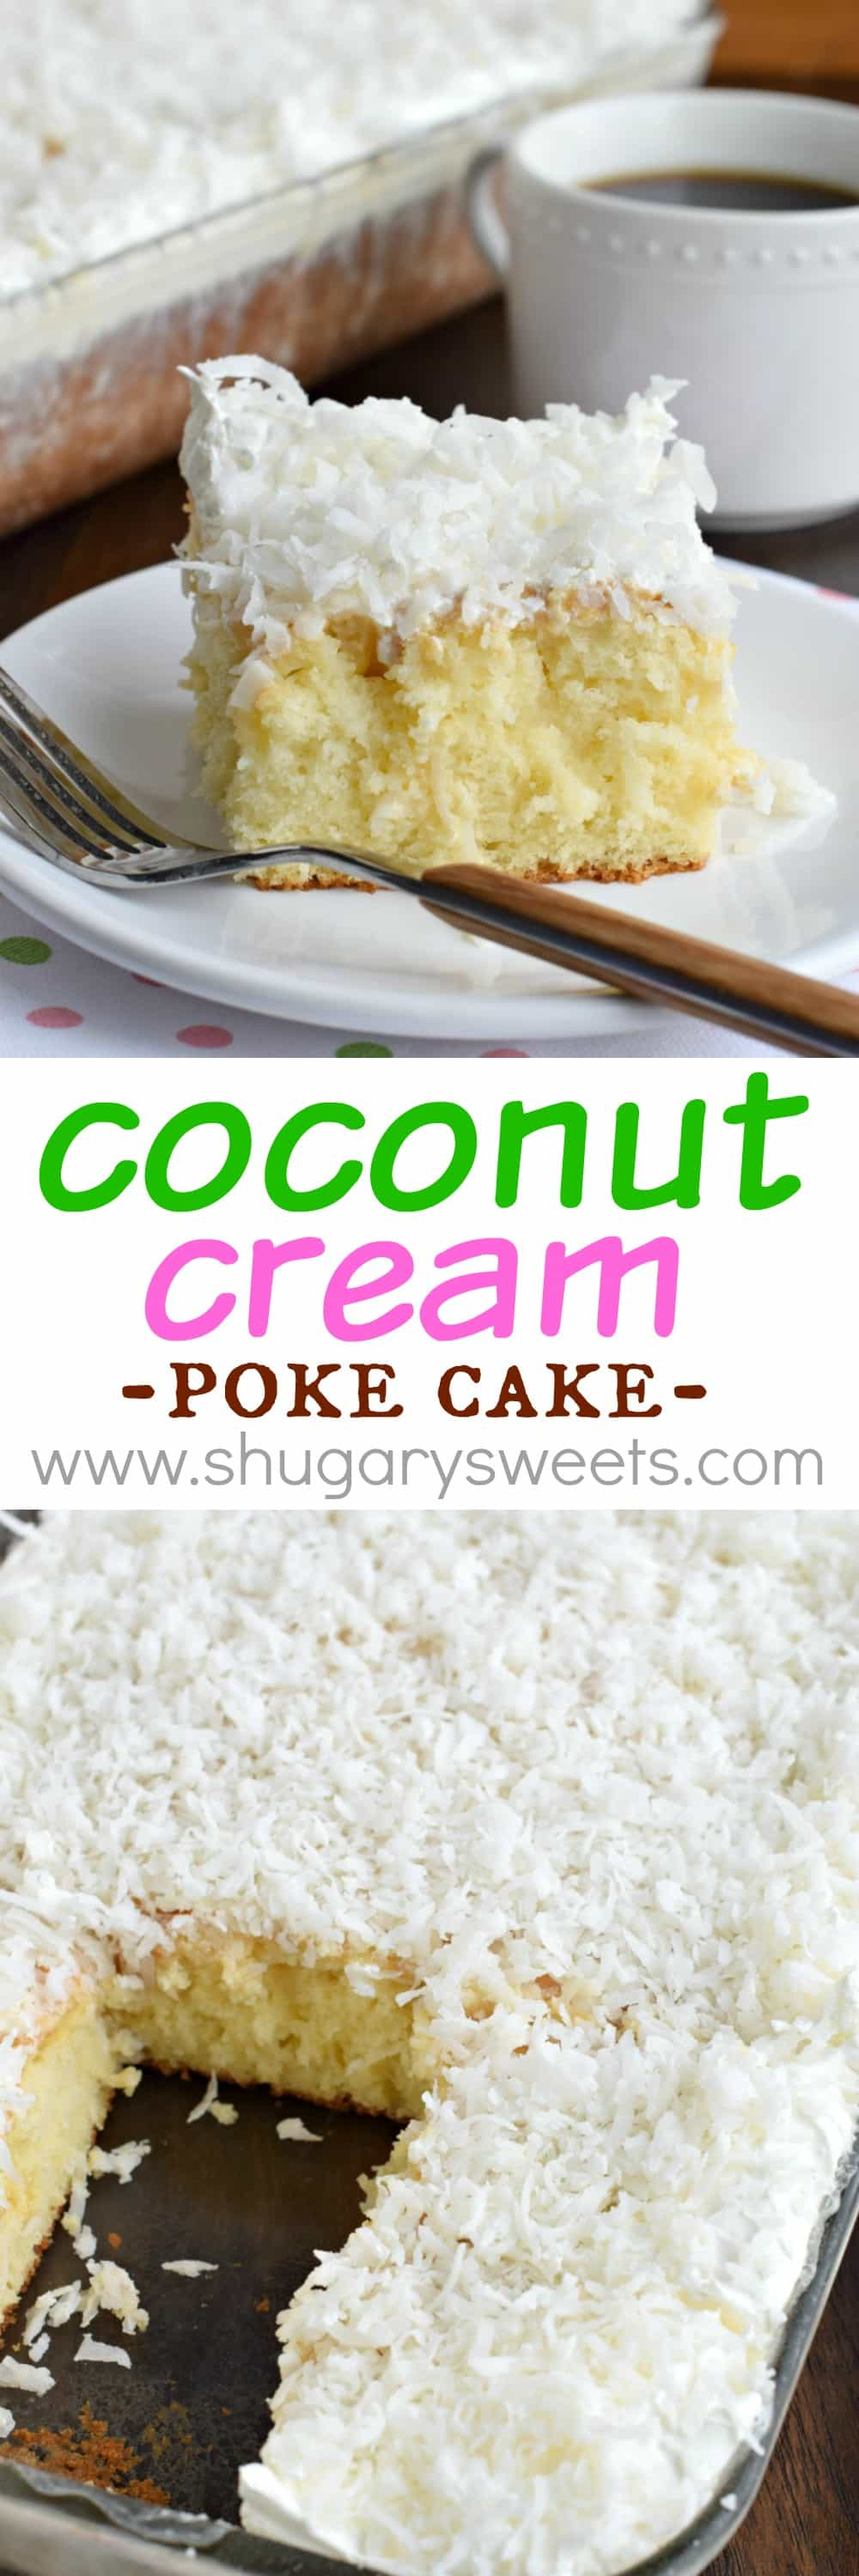 Recipe For Creamsicle Poke Cake